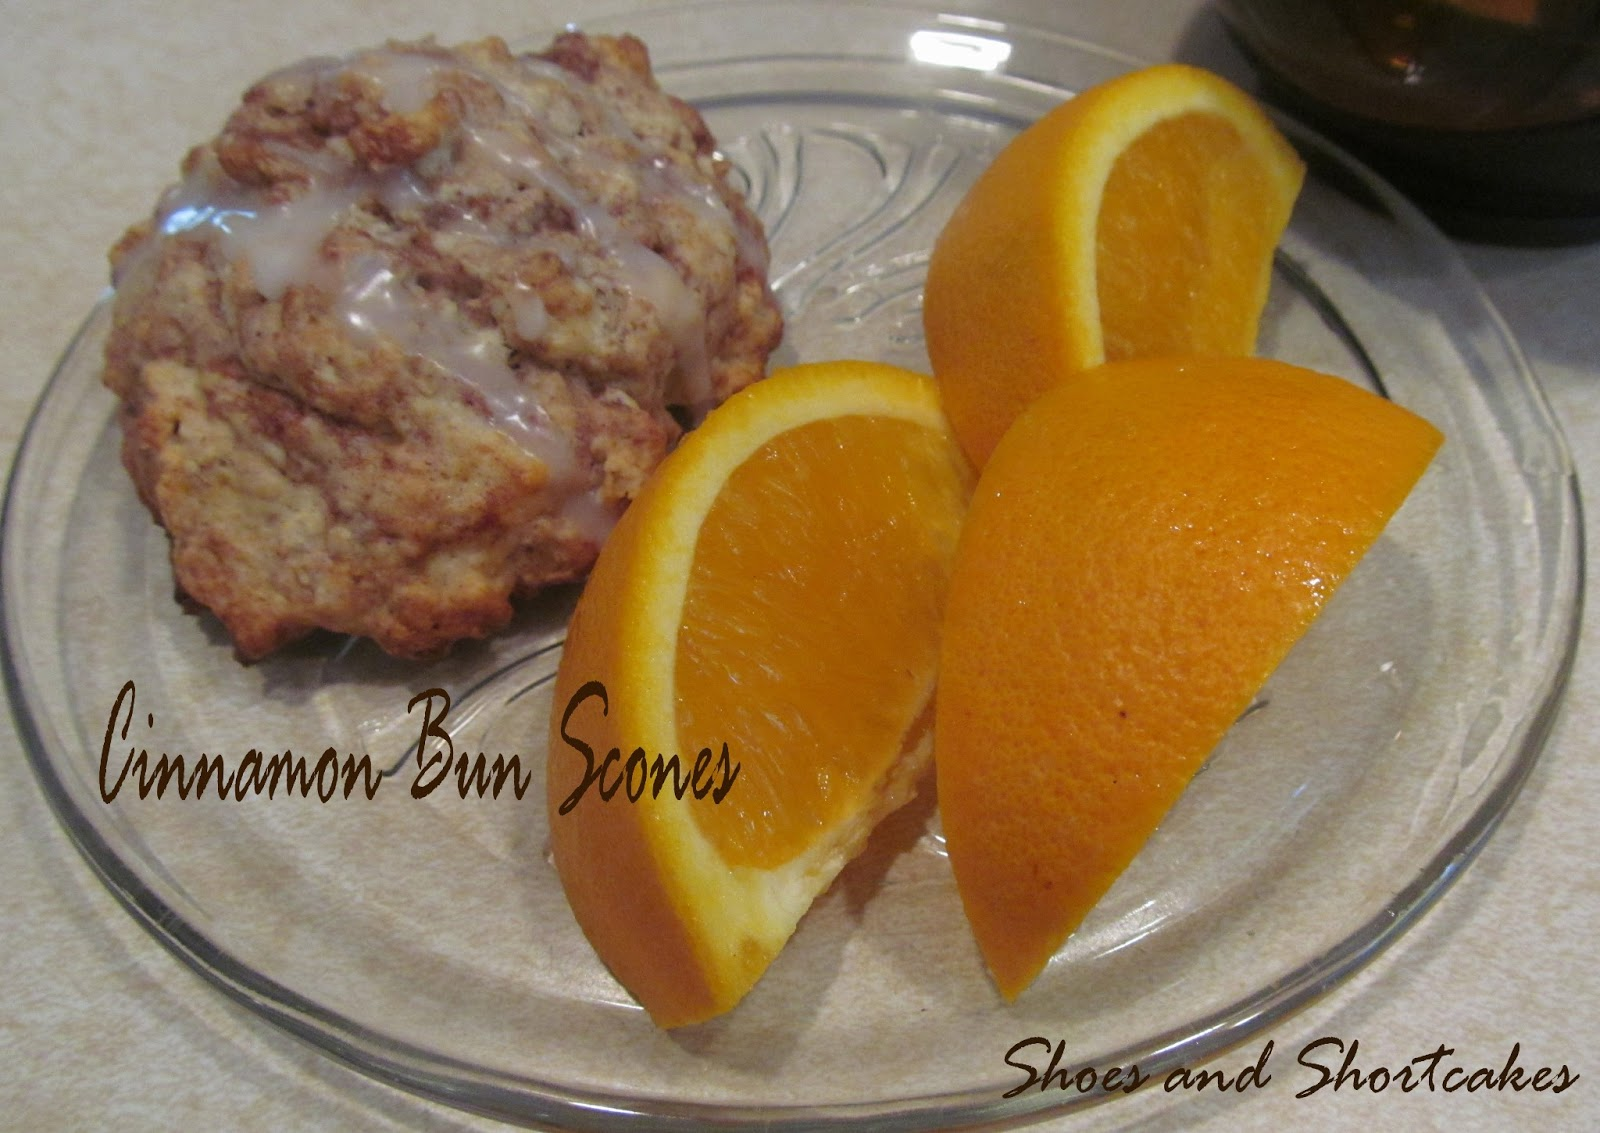 Shoes and Shortcakes: Cinnamon Bun Scones